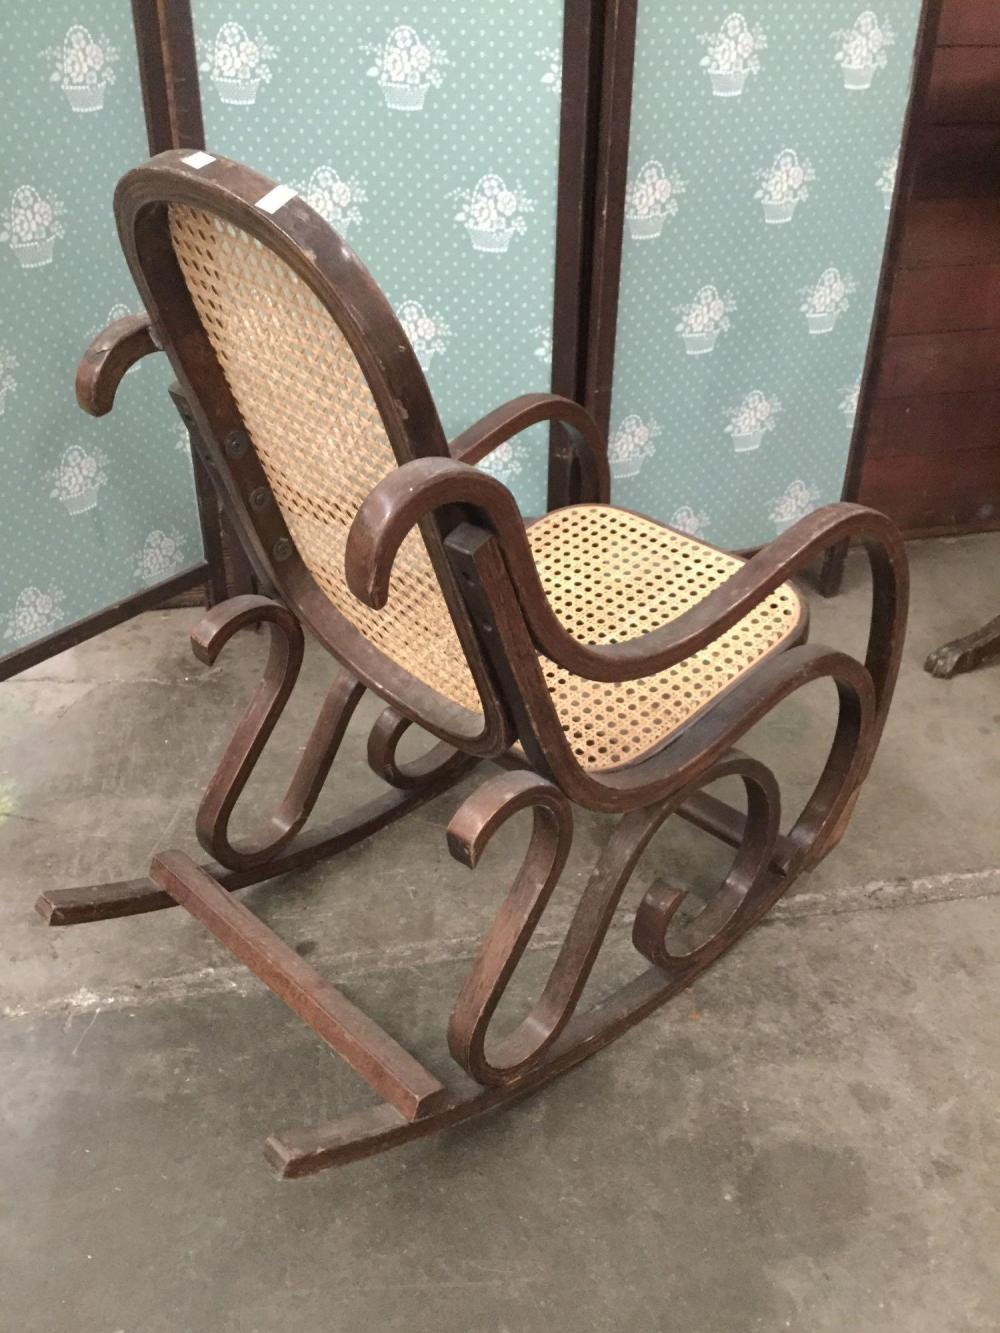 Terrific Vintage Child Size Wood Rocking Chair With Cane Wicker Seat Creativecarmelina Interior Chair Design Creativecarmelinacom